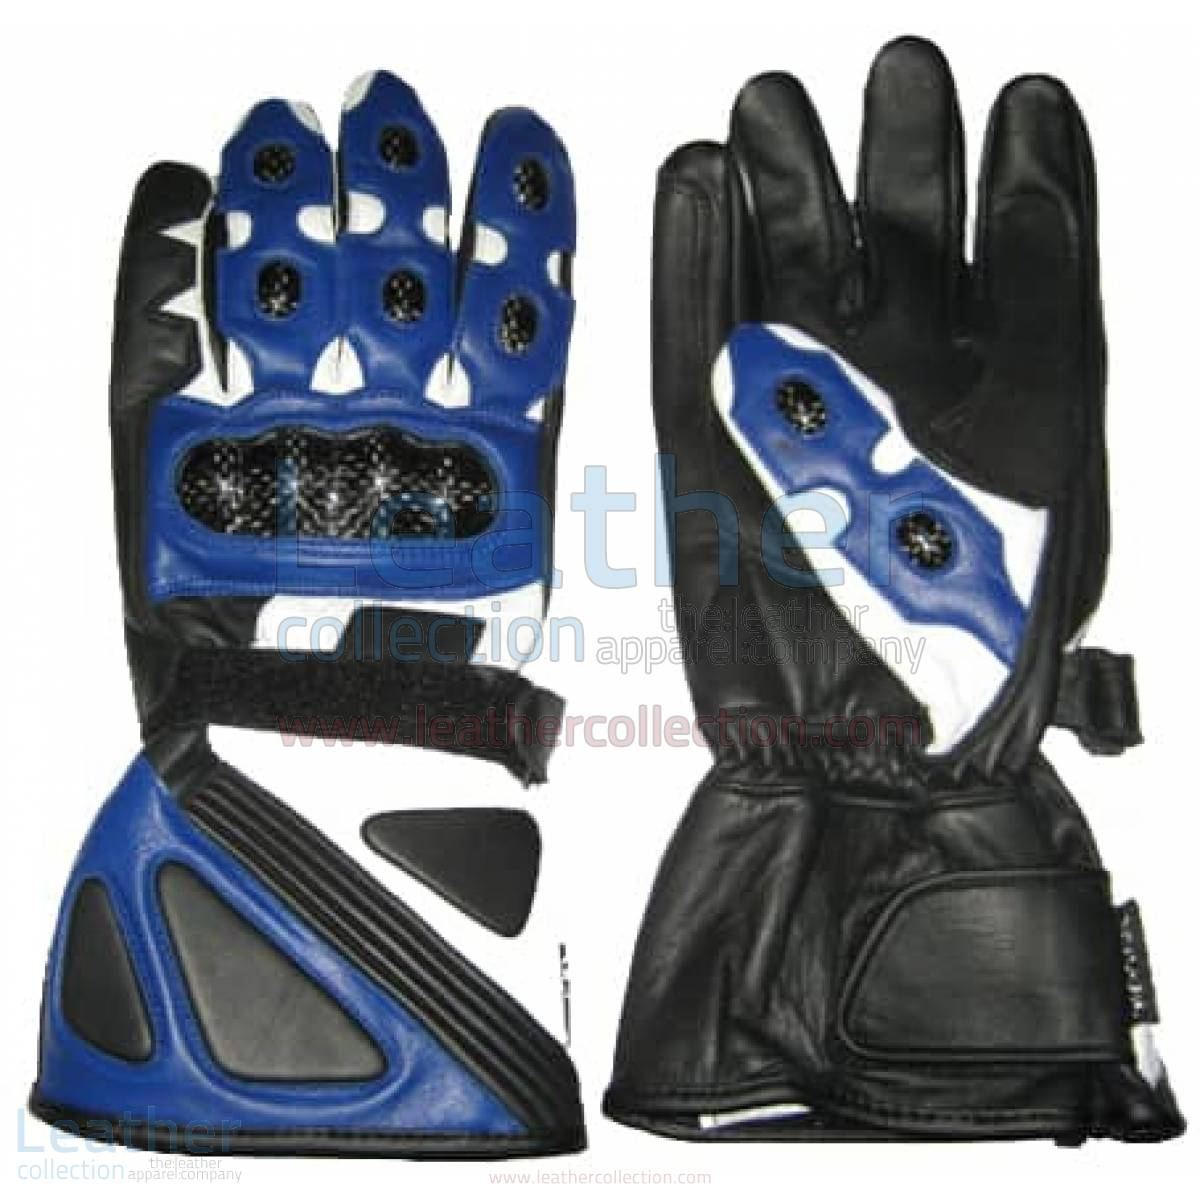 Bravo Blue Bike Gloves –  Gloves